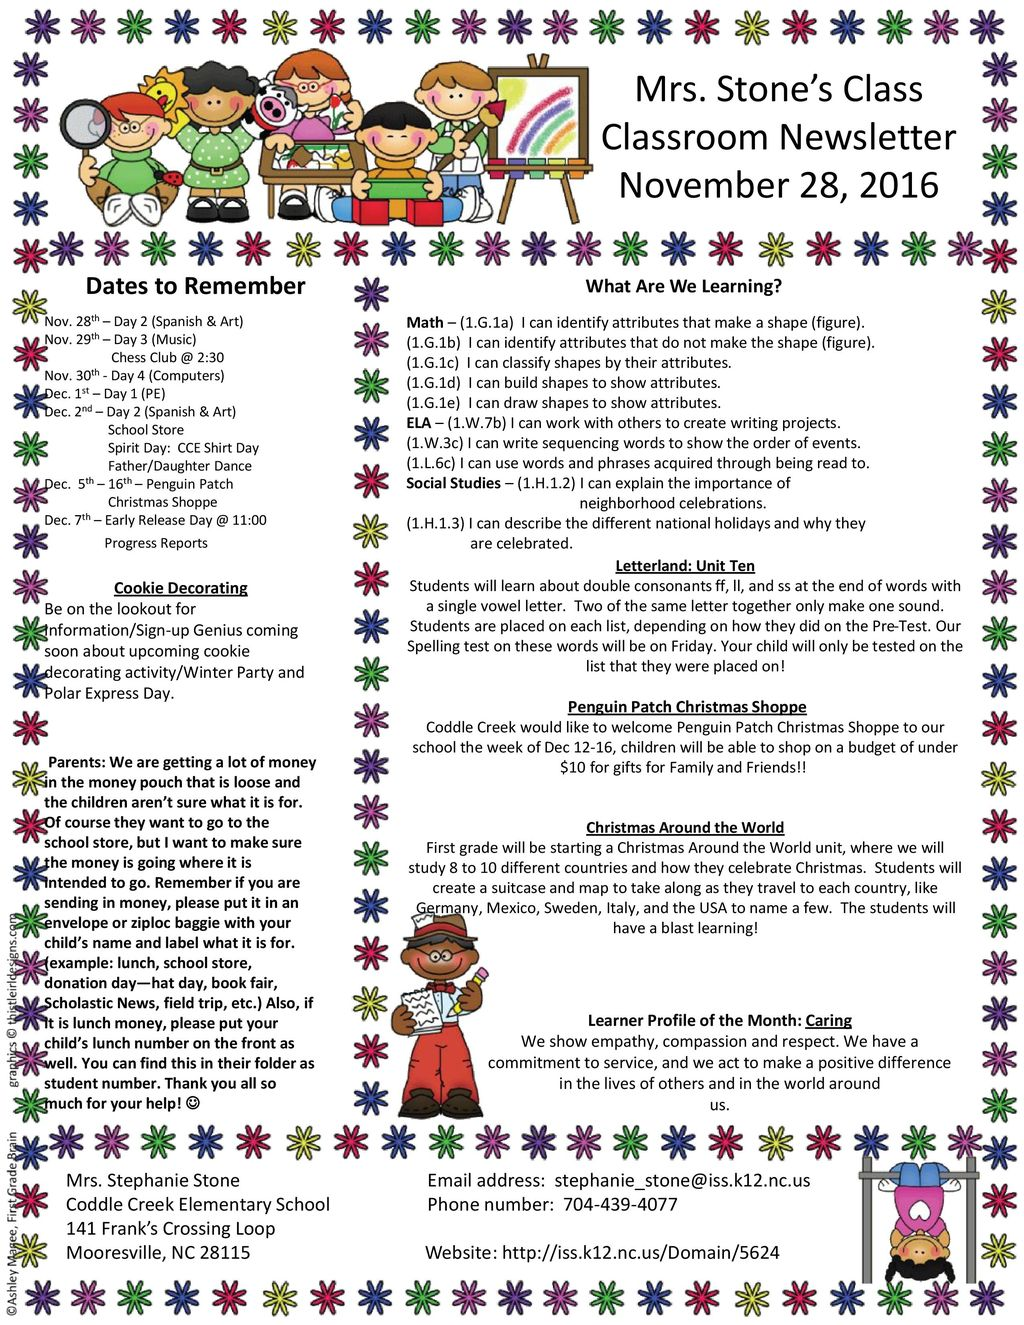 christmas around the world learner profile of the month caring - Christmas Around The World Decorations For A Party